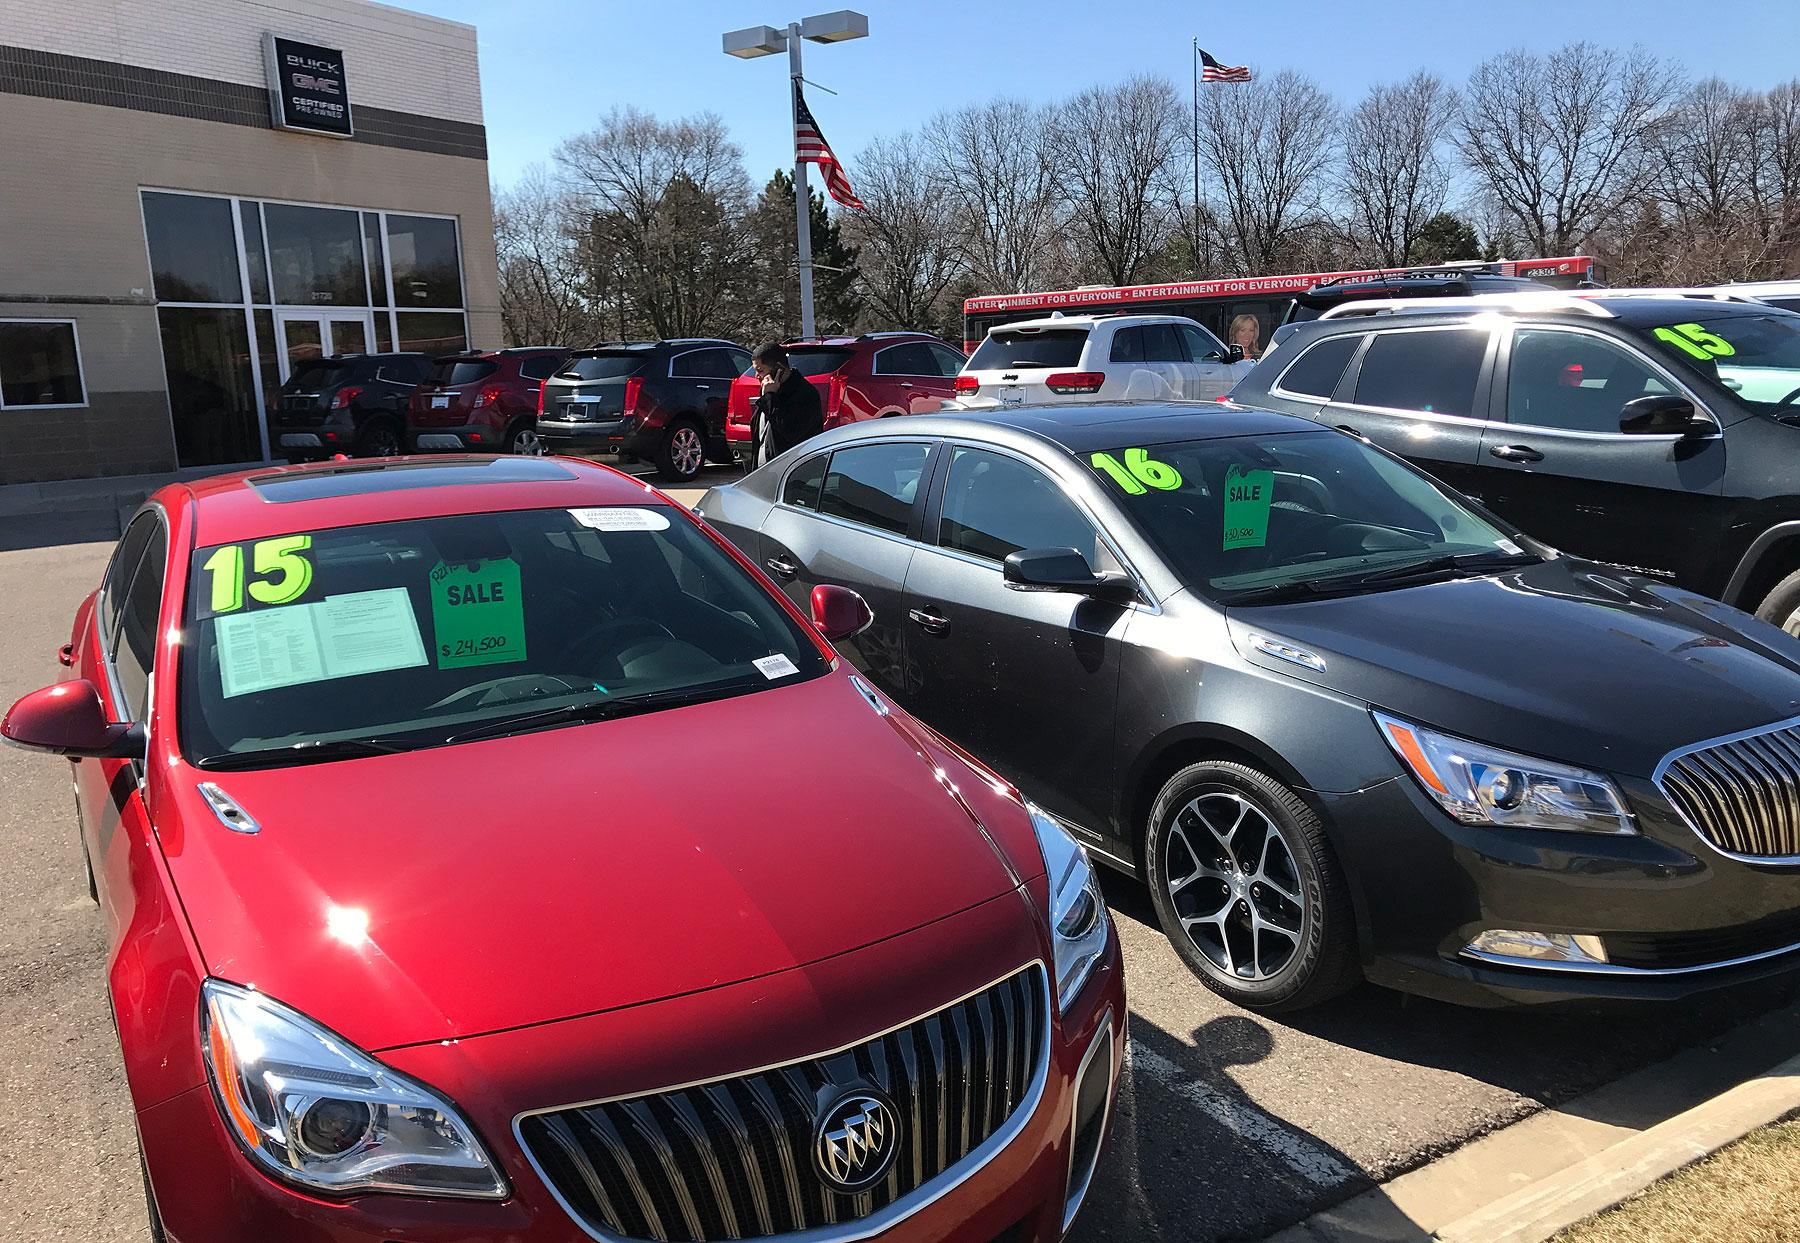 wholesale used vehicle prices in the u s increased 2 8 percent in september from august manheim says photo credit david phillips